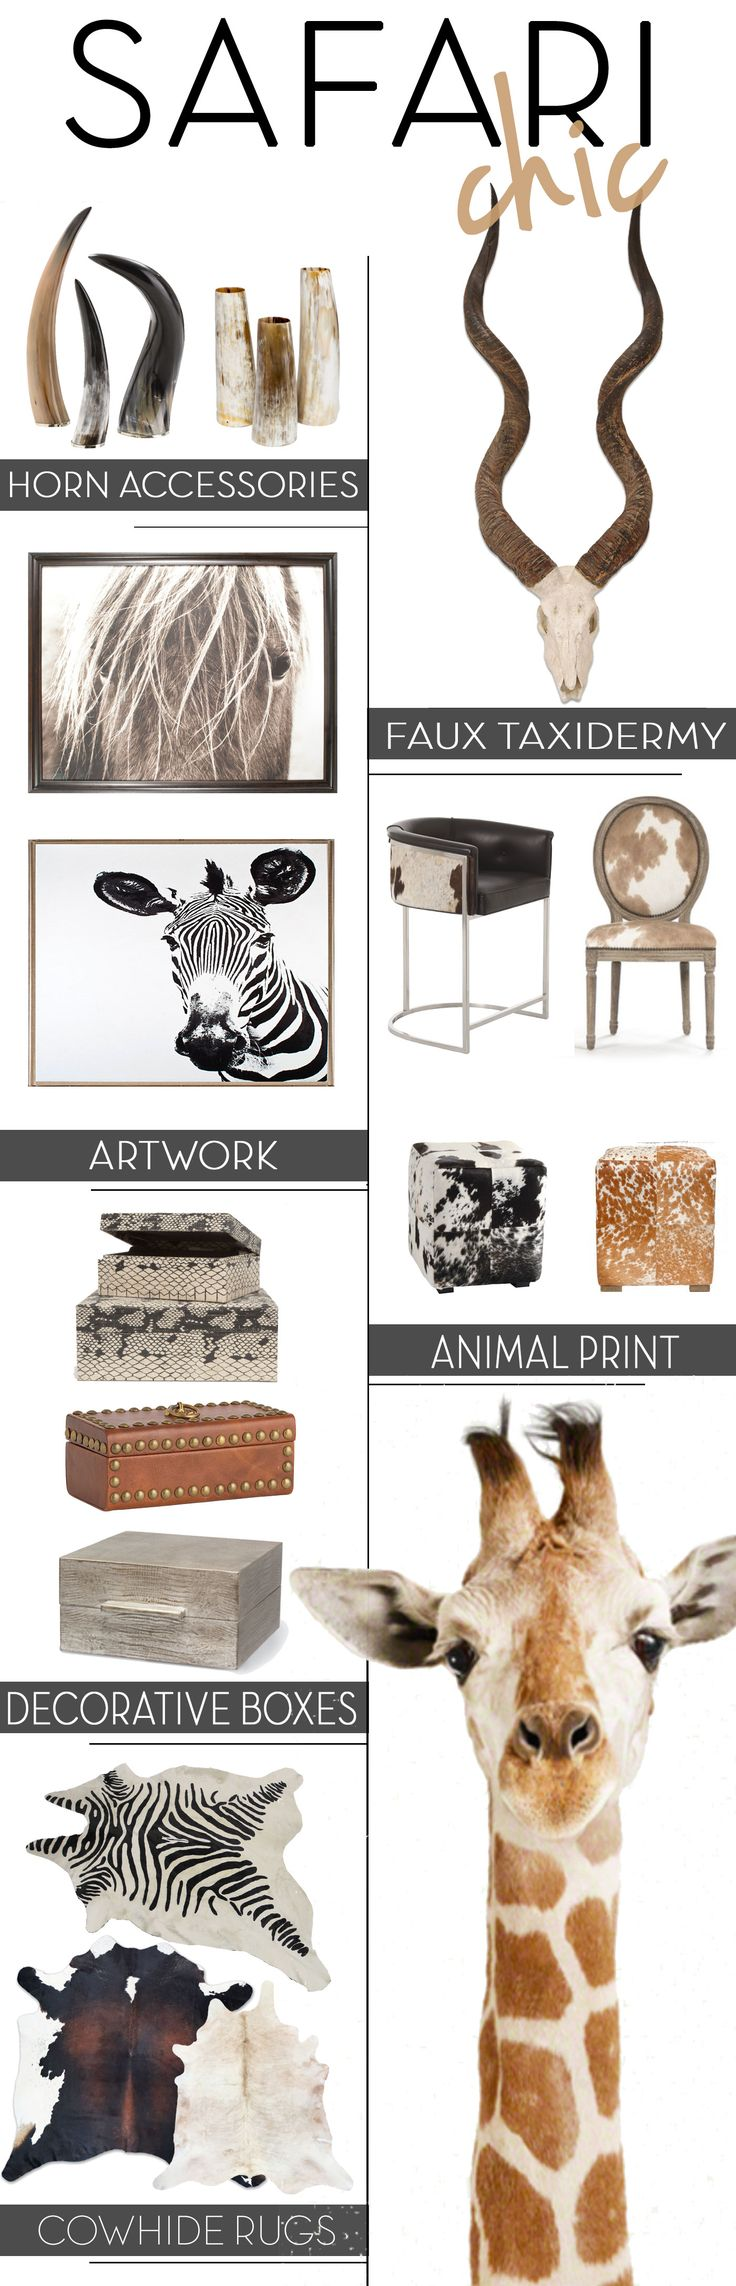 best 25+ safari home decor ideas only on pinterest | animal decor